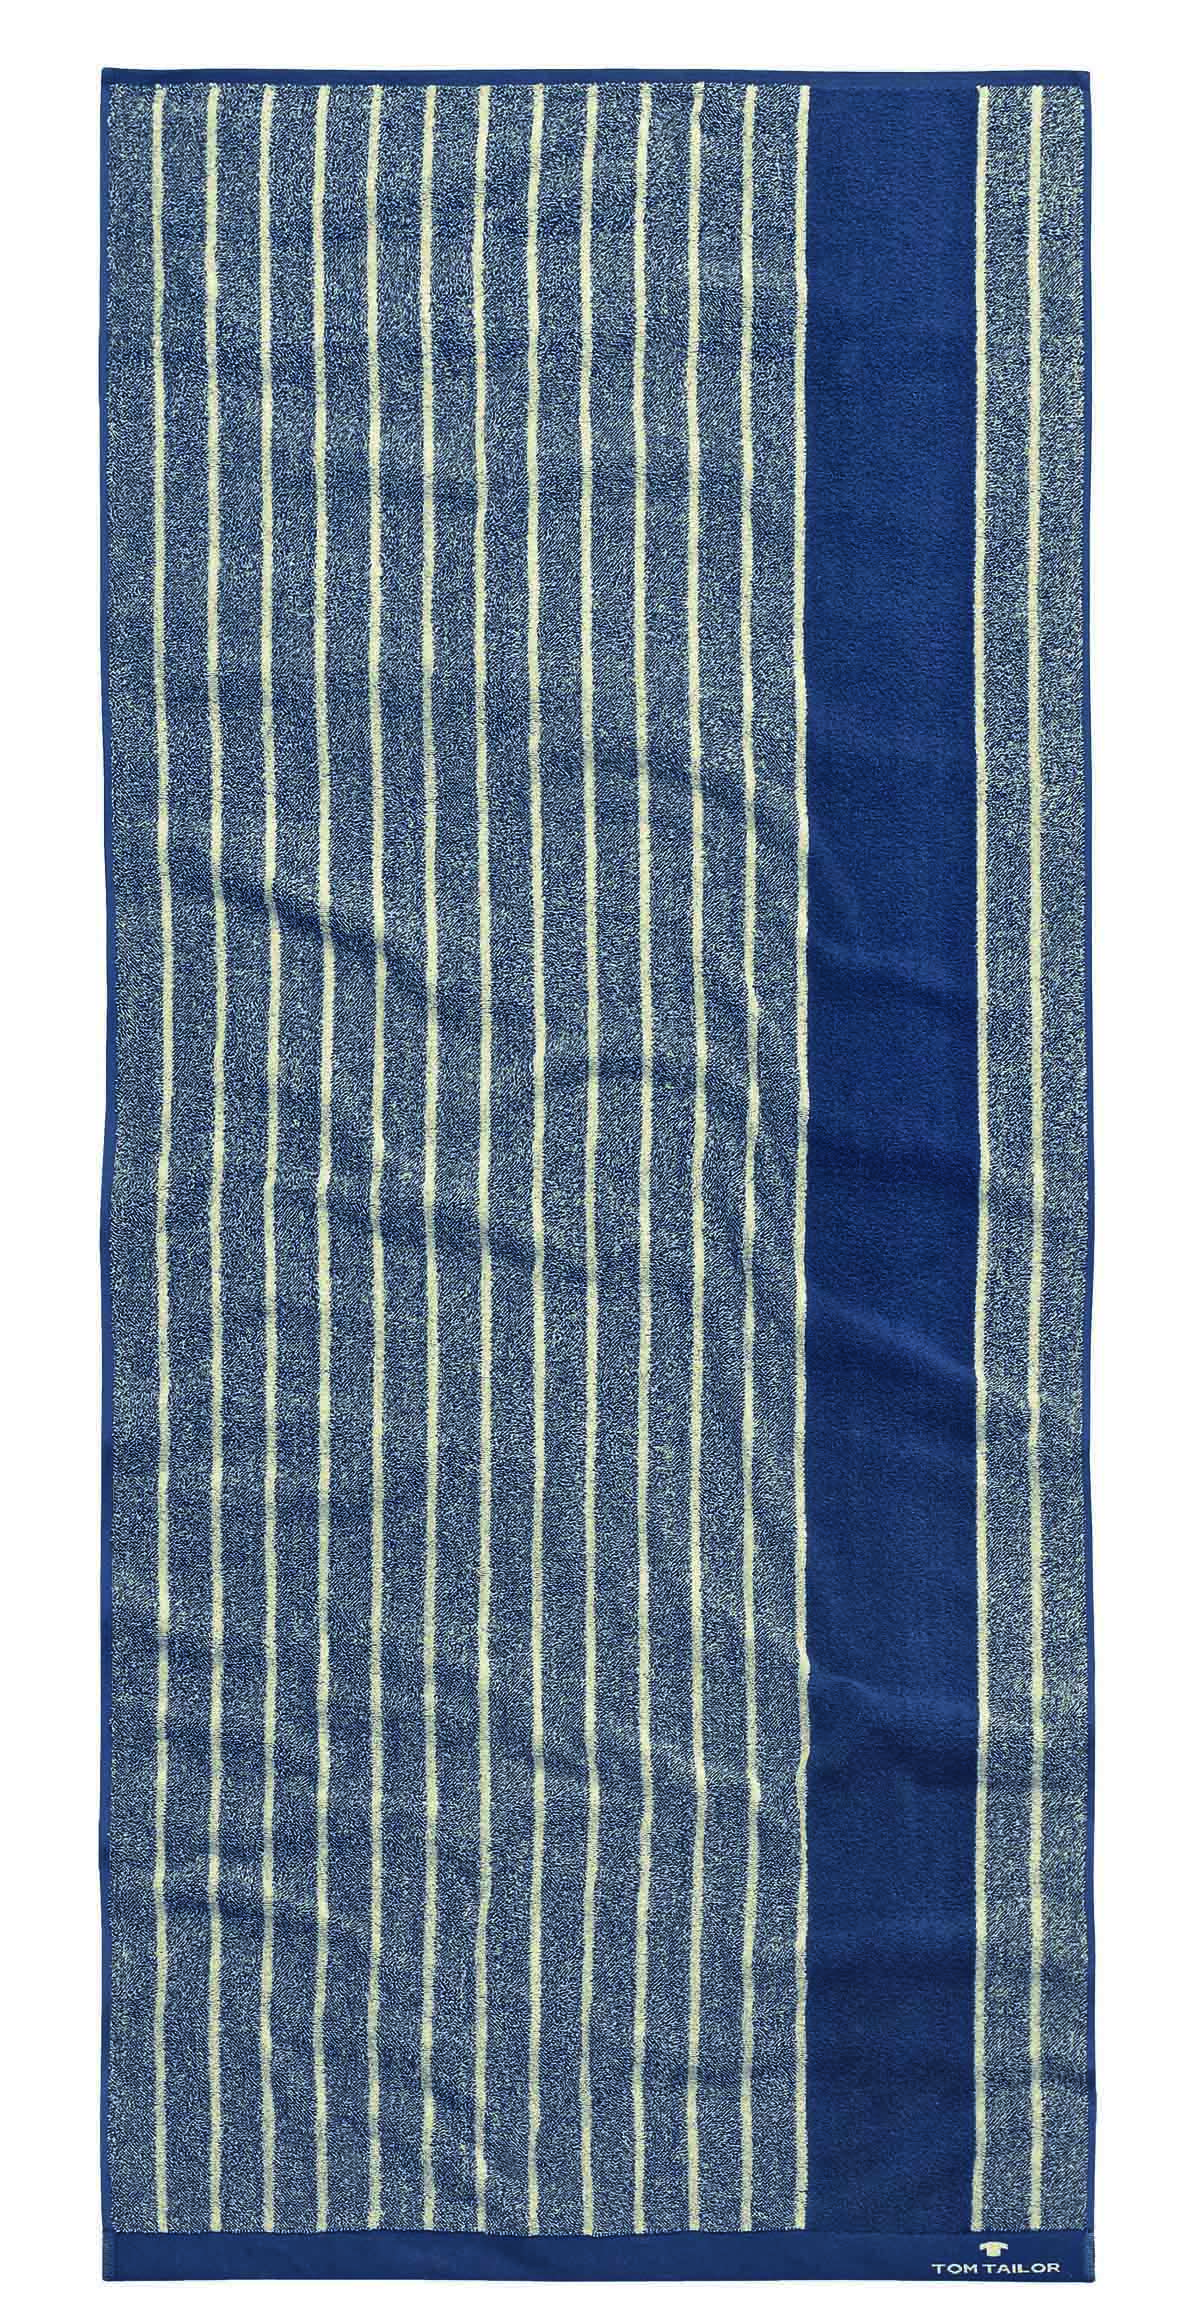 tom tailor handtuch vitality towel stripes navy 2er set beauty scouts beauty lifestyle. Black Bedroom Furniture Sets. Home Design Ideas